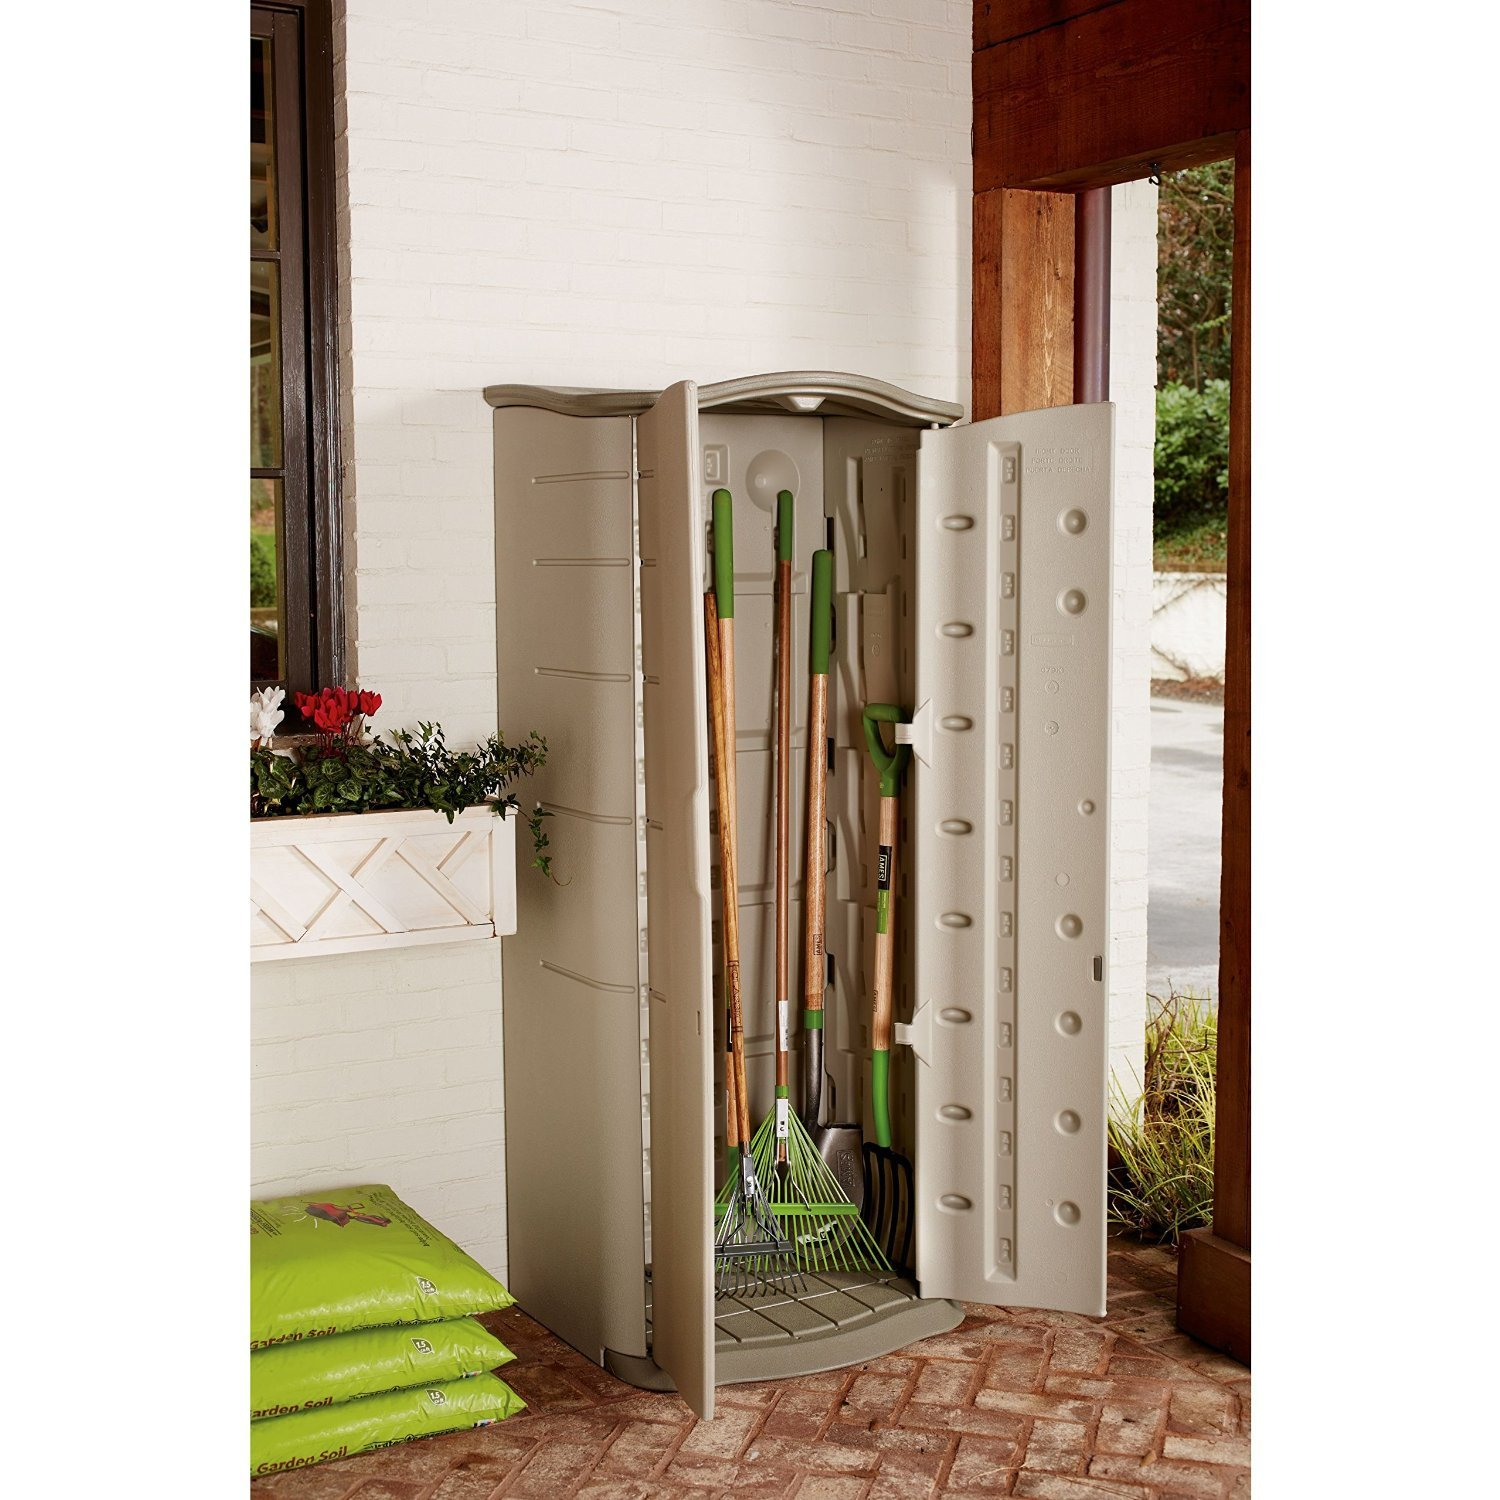 uk cabinet garden tools co cu outdoor dp outdoors vertical amazon rubbermaid diy storage